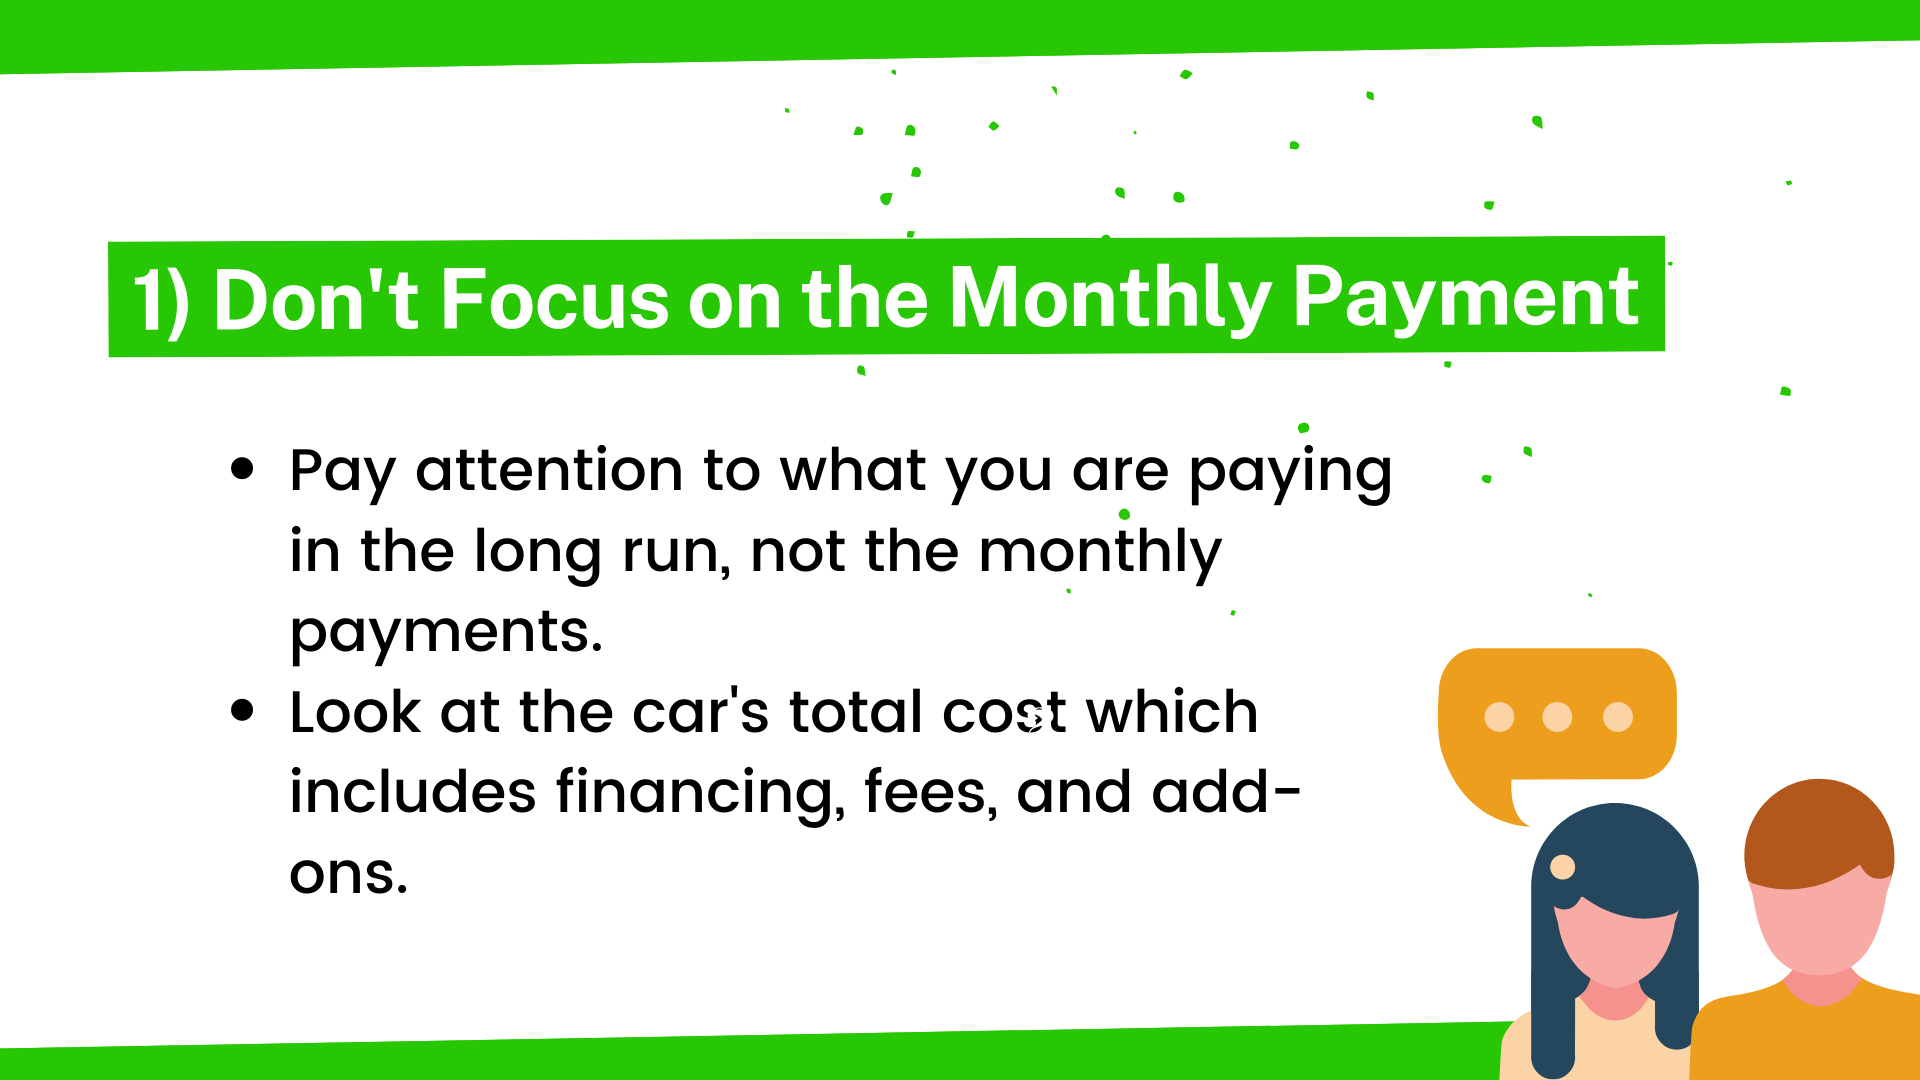 Pay attention to what you are paying in the long run, not the monthly payments. Look at the car's total cost which includes financing, fees, and add-ons.